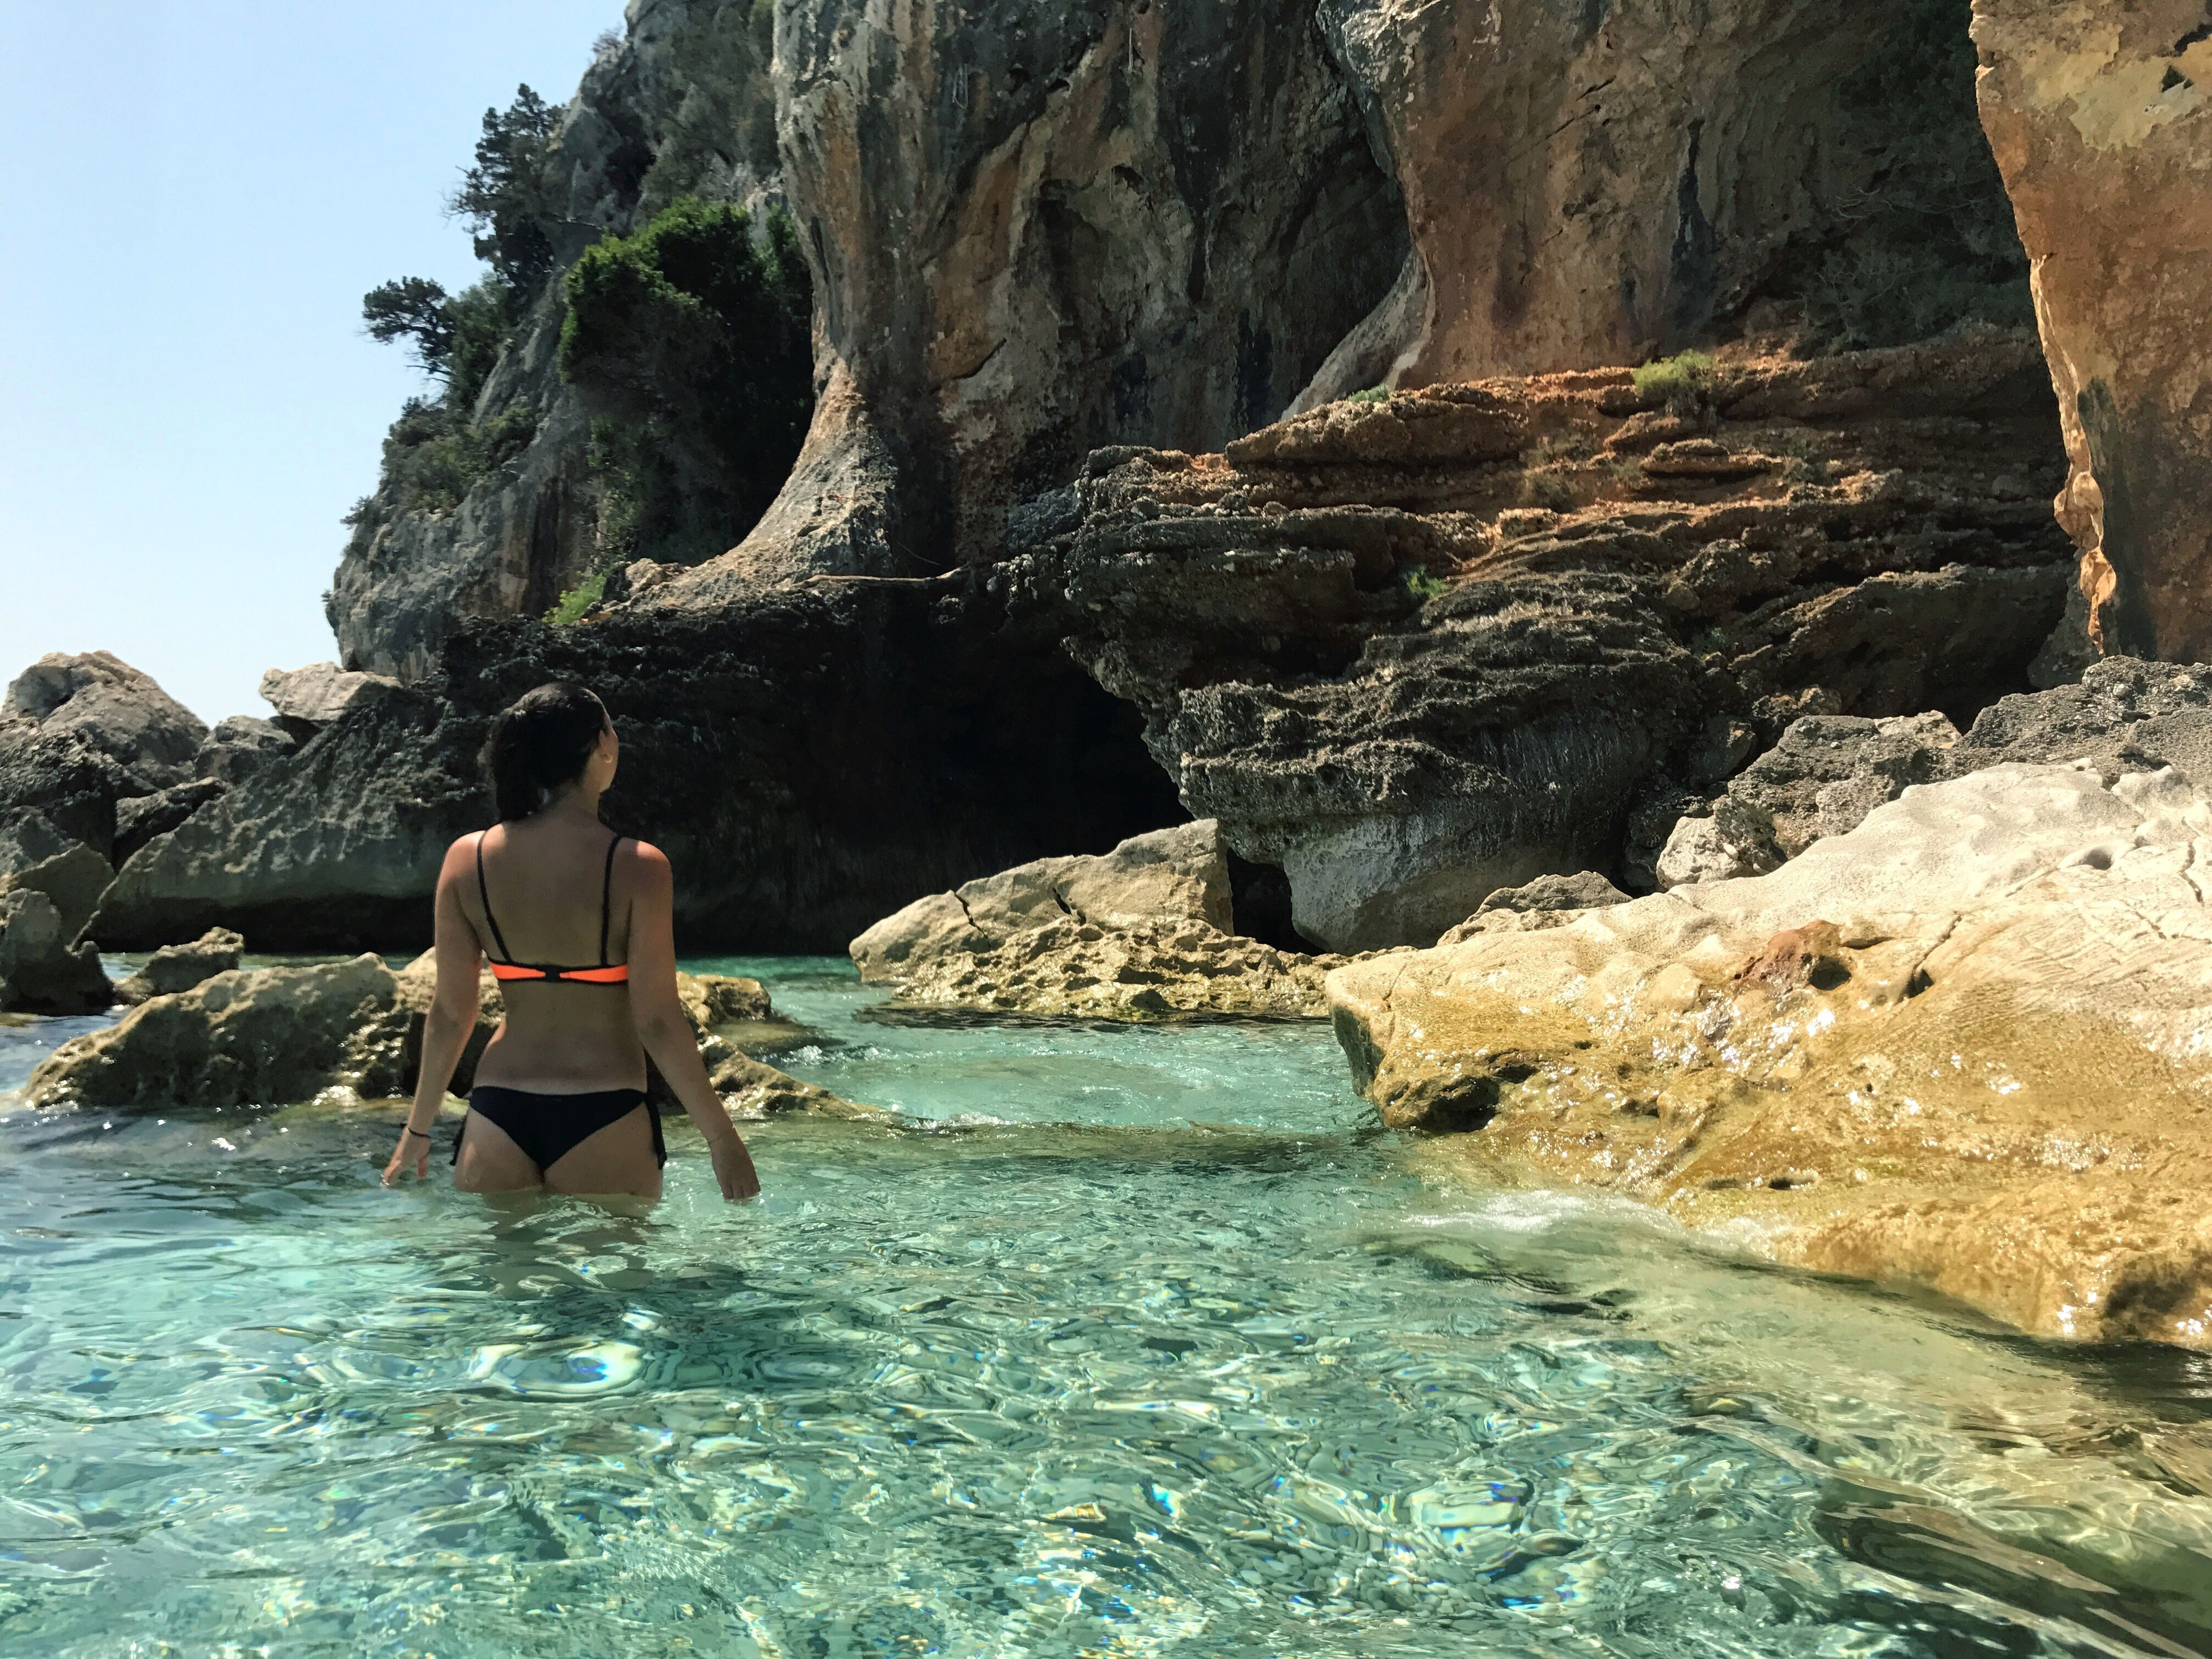 rock - object, rock formation, real people, water, rear view, leisure activity, beauty in nature, nature, one person, young adult, young women, lifestyles, bikini, full length, scenics, vacations, waterfront, day, sea, adventure, outdoors, cave, women, tree, sky